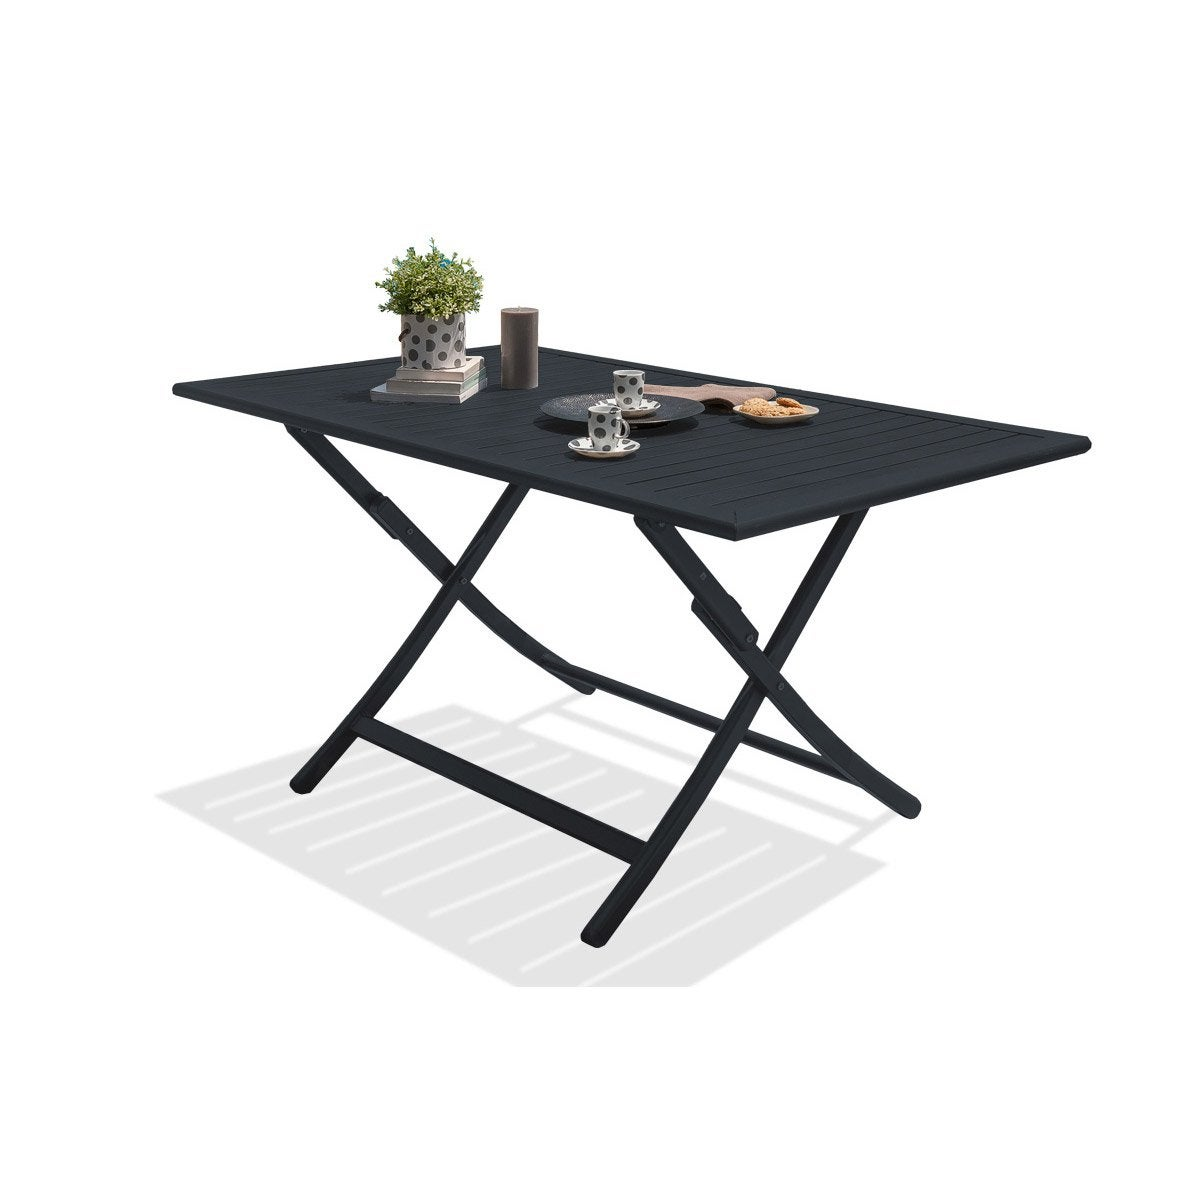 table de jardin marius rectangulaire gris anthracite 4 6 personnes leroy merlin. Black Bedroom Furniture Sets. Home Design Ideas